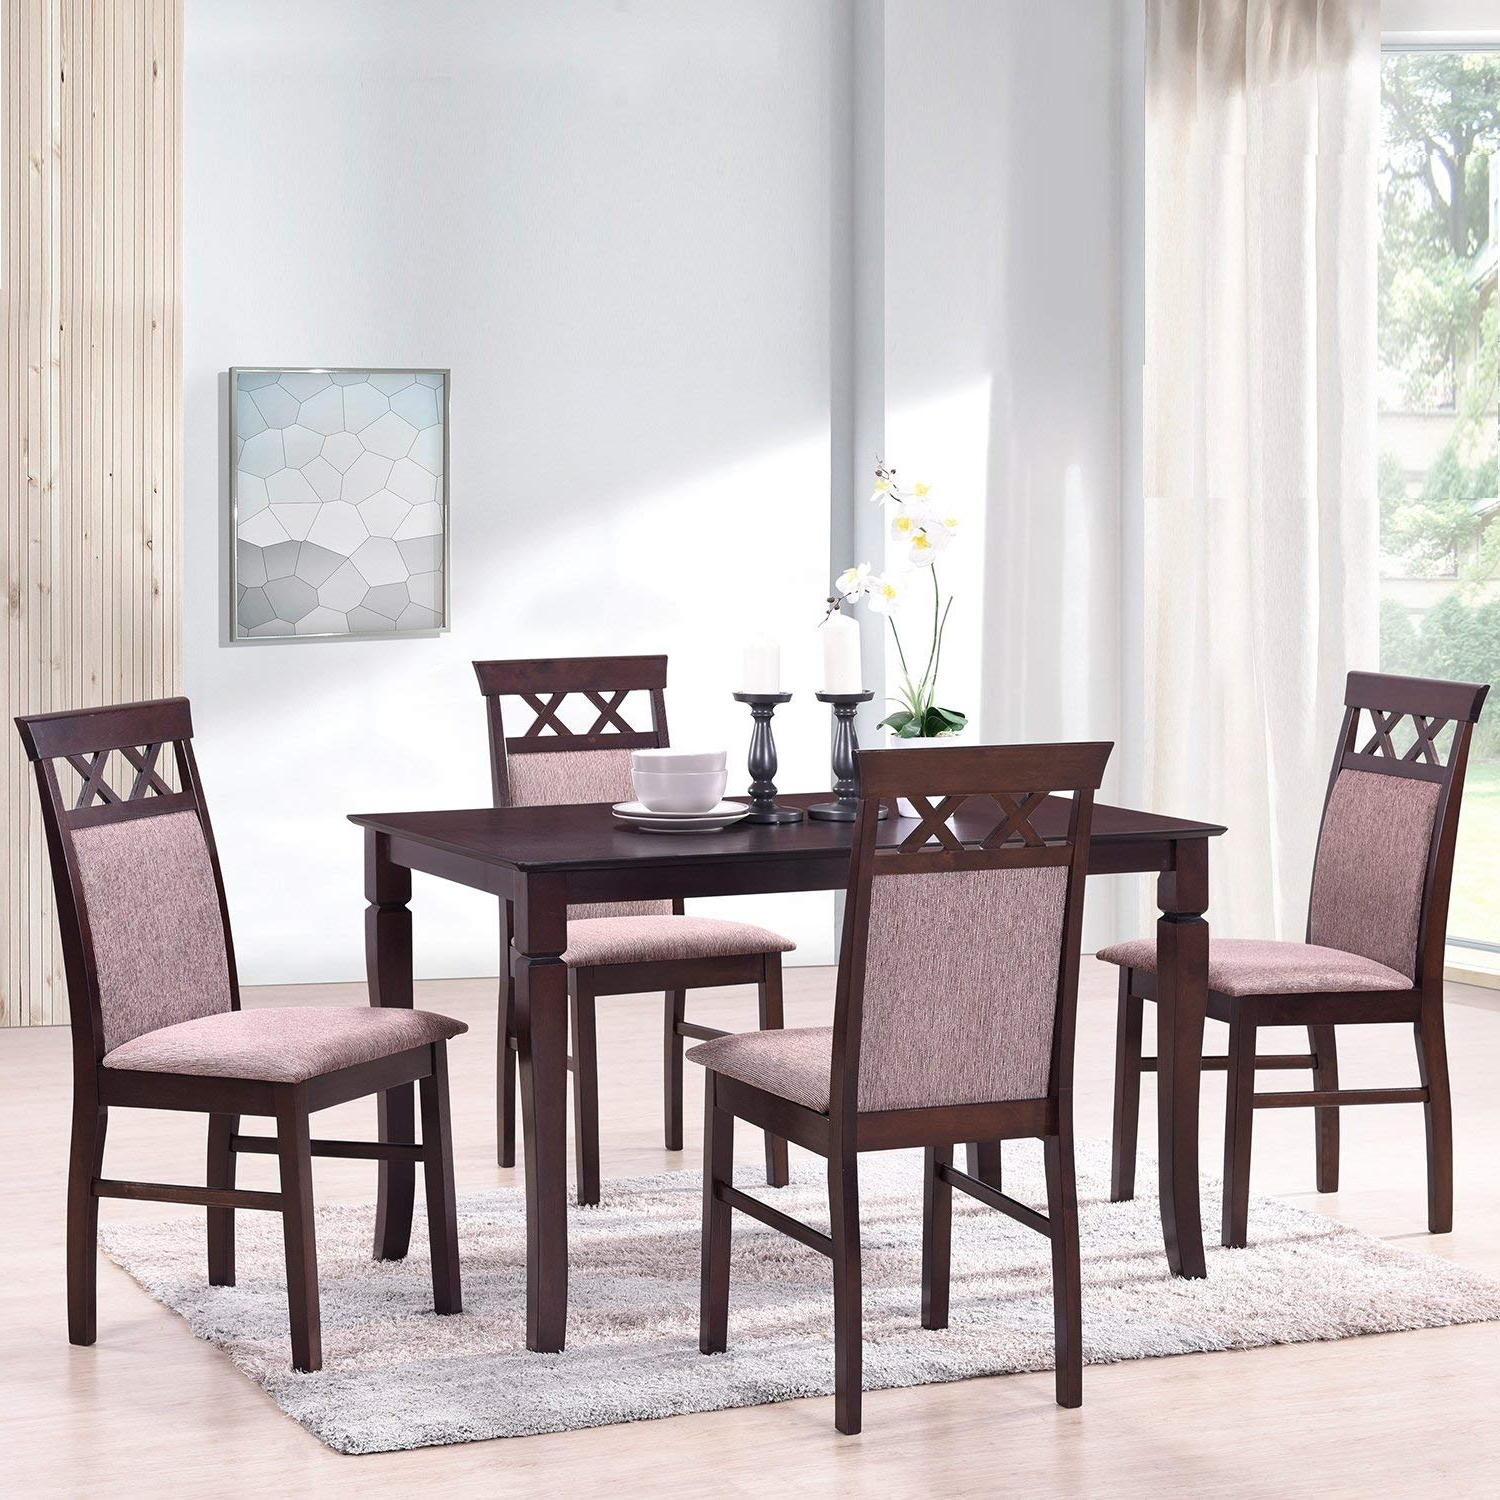 Favorite Harper 5 Piece Counter Sets In Amazon: Merax Harper&bright Designs 5 Piece Dining Set Rubber (View 11 of 25)